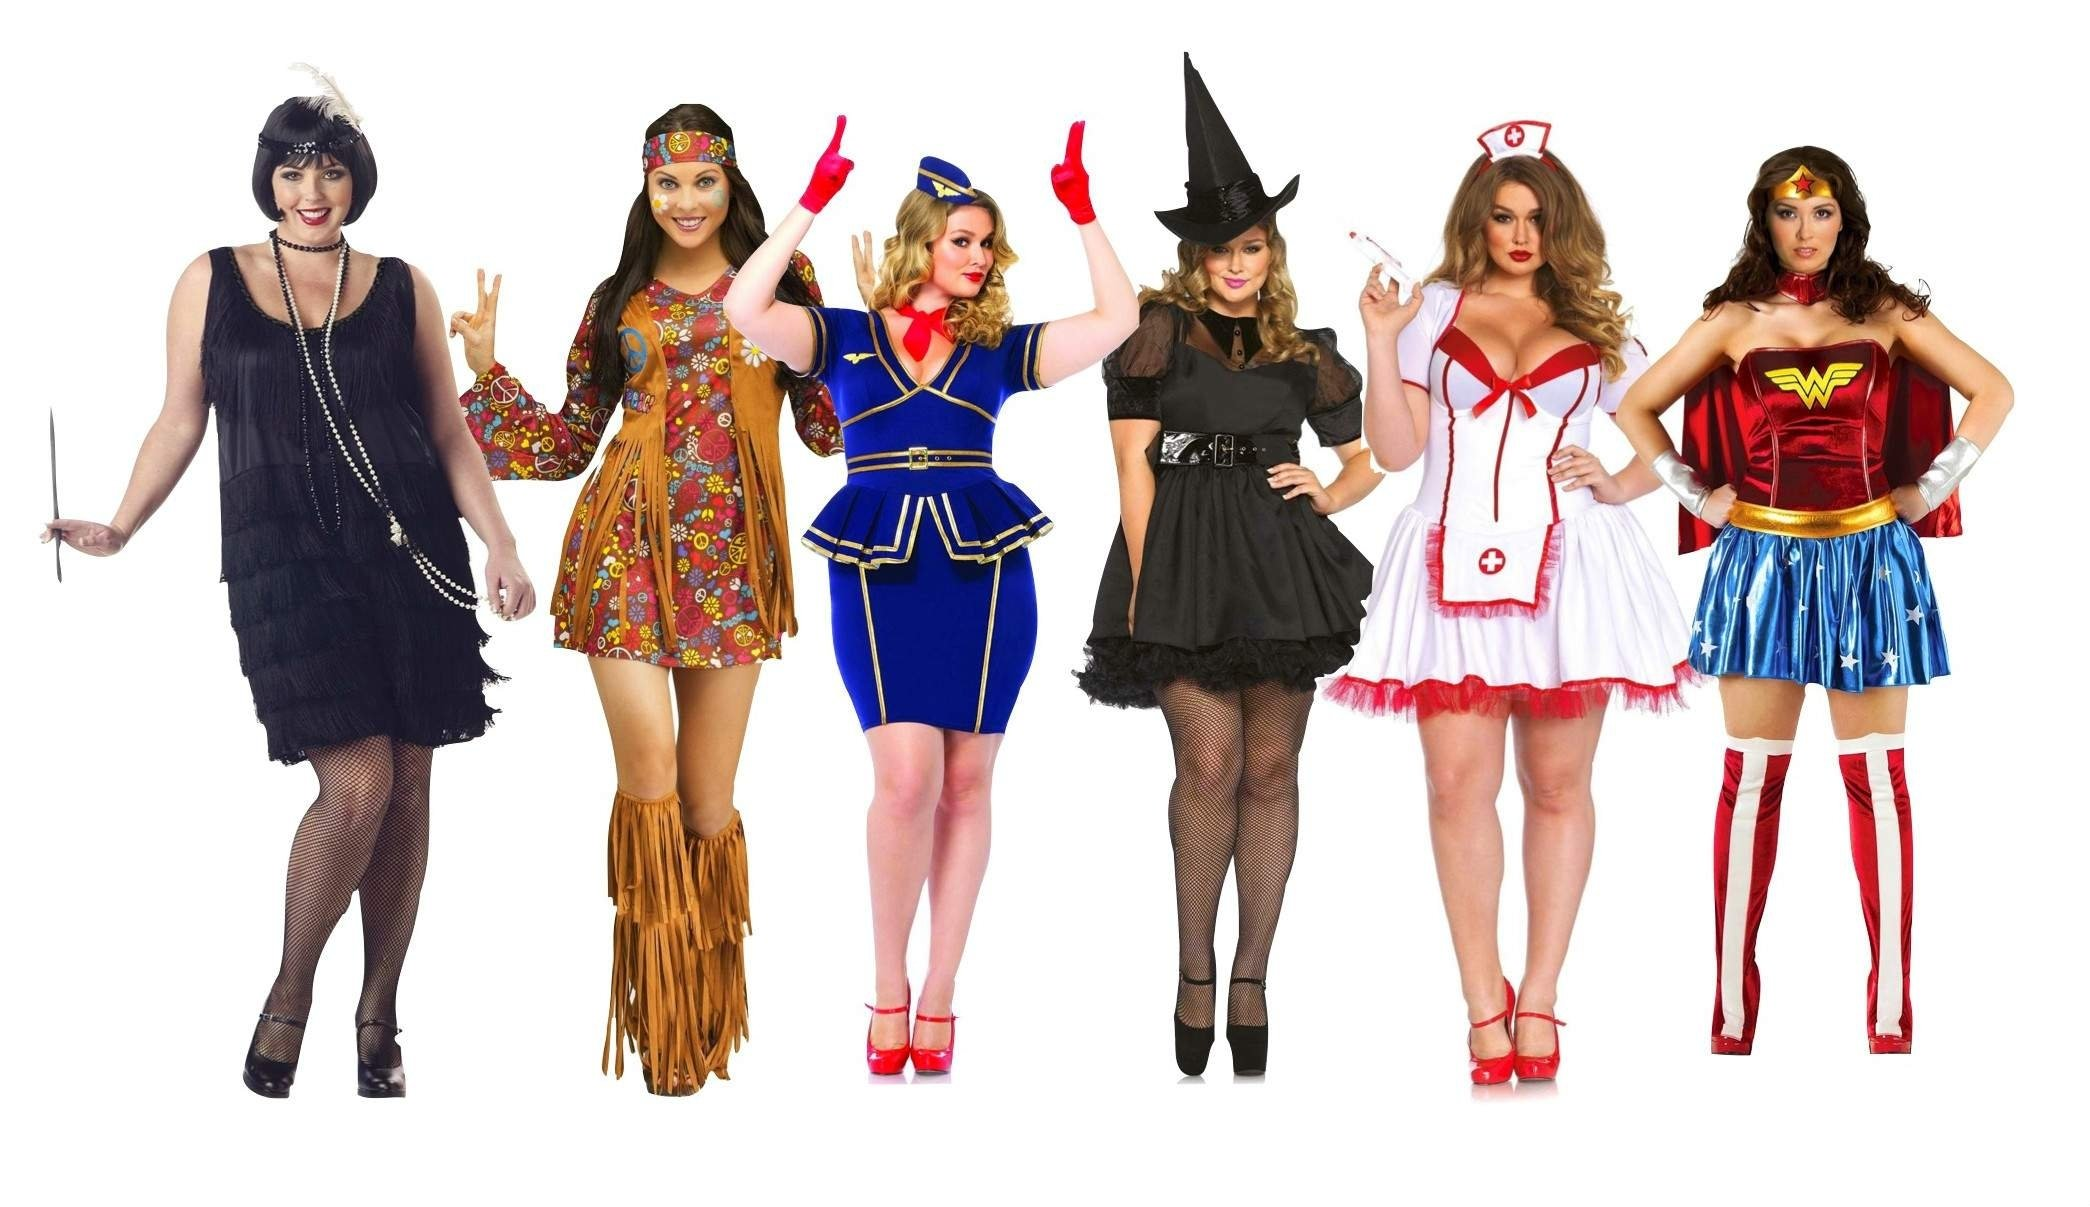 10 Cute Plus Size Halloween Costumes Ideas diy plus size costumes her campus 1 2020